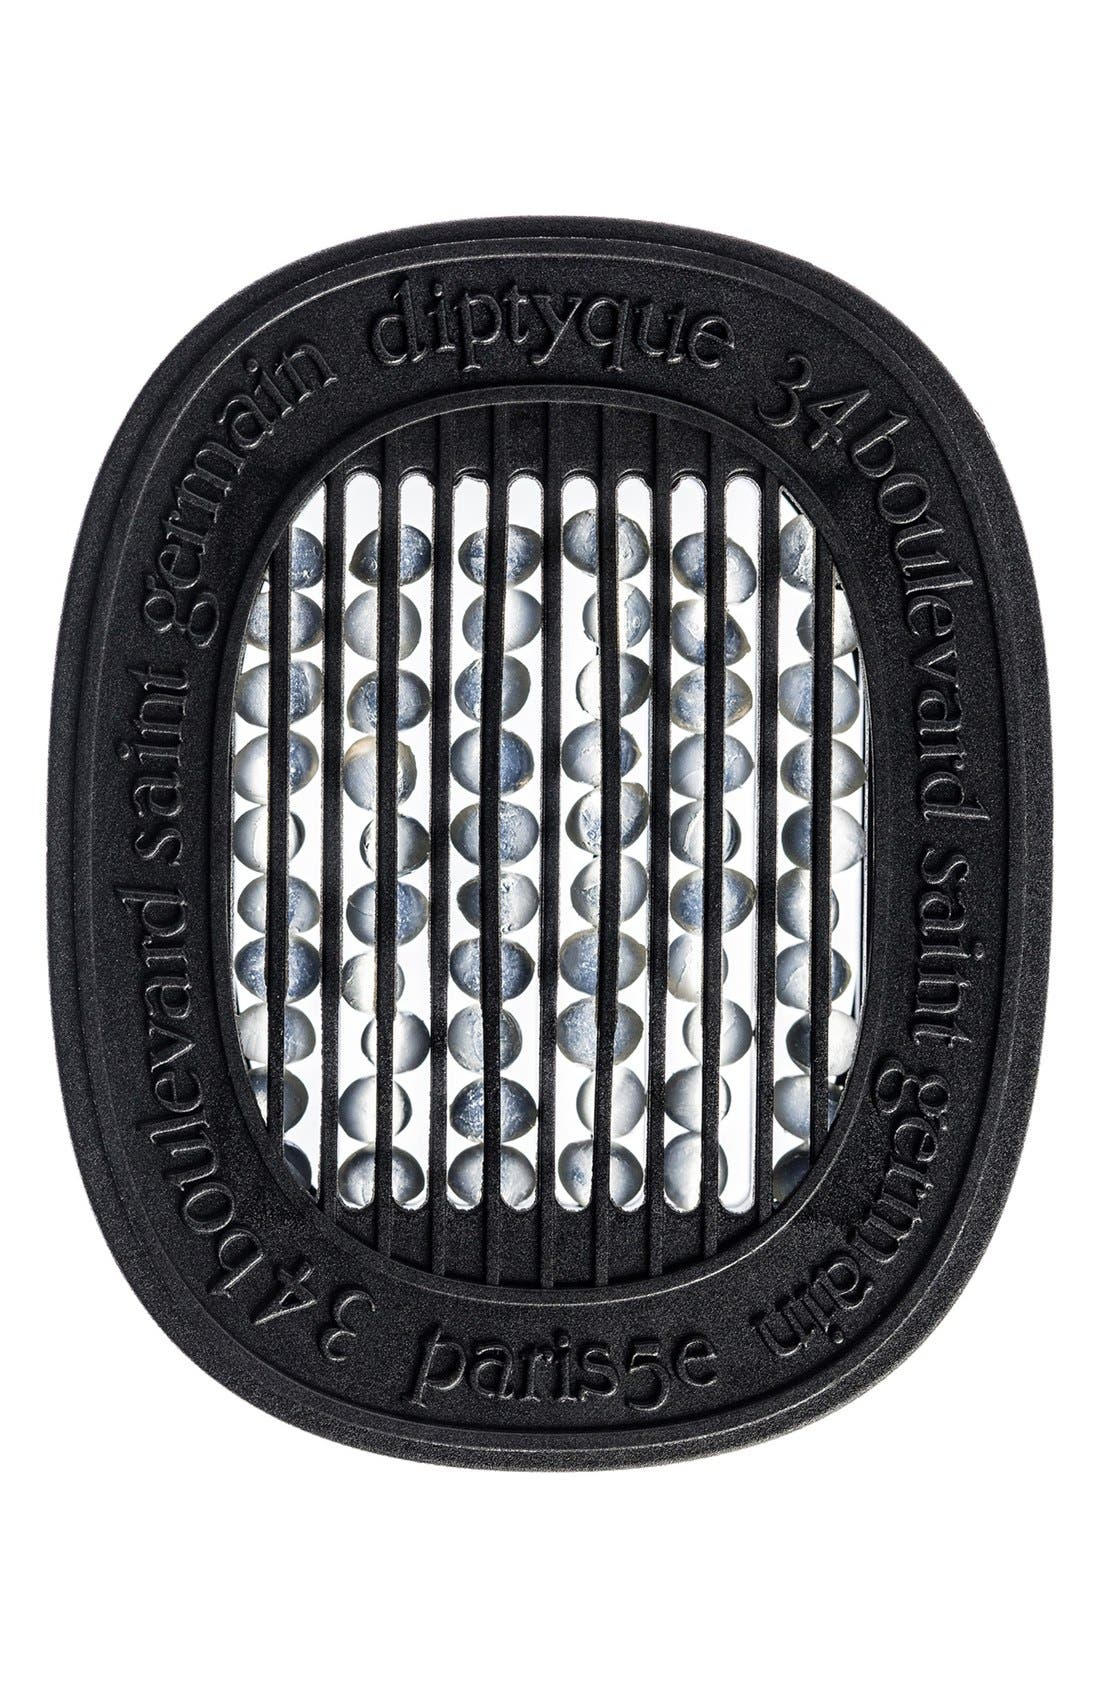 diptyque 'Figuier' Electric Diffuser Cartridge